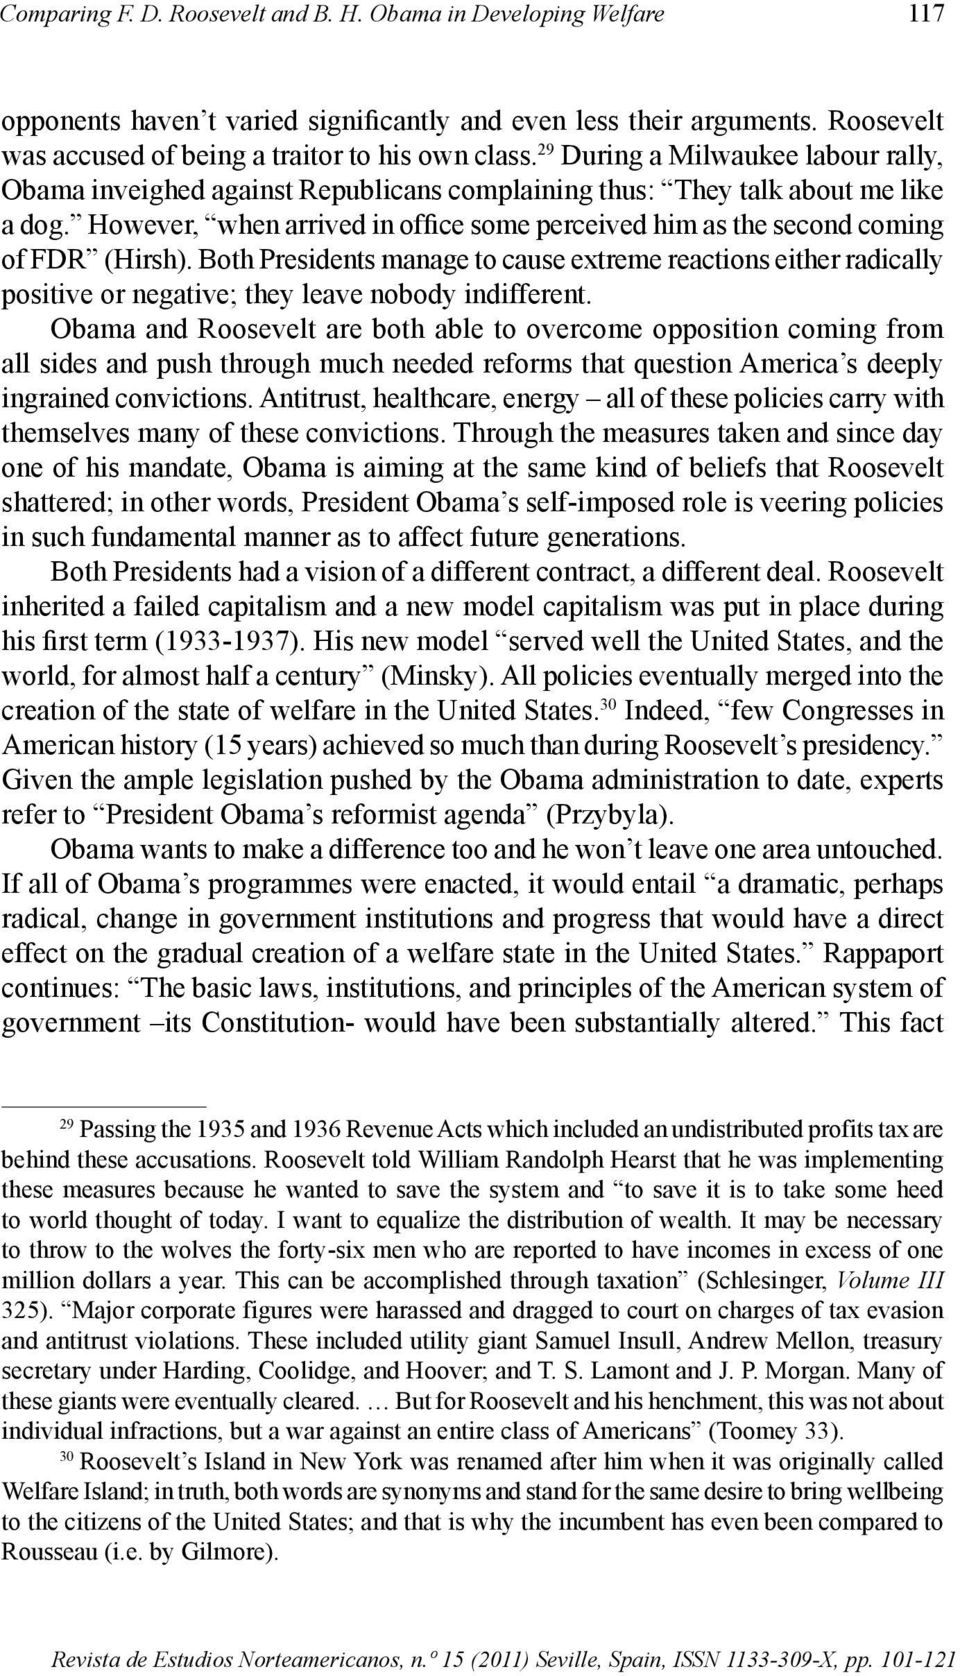 However, when arrived in office some perceived him as the second coming of FDR (Hirsh).